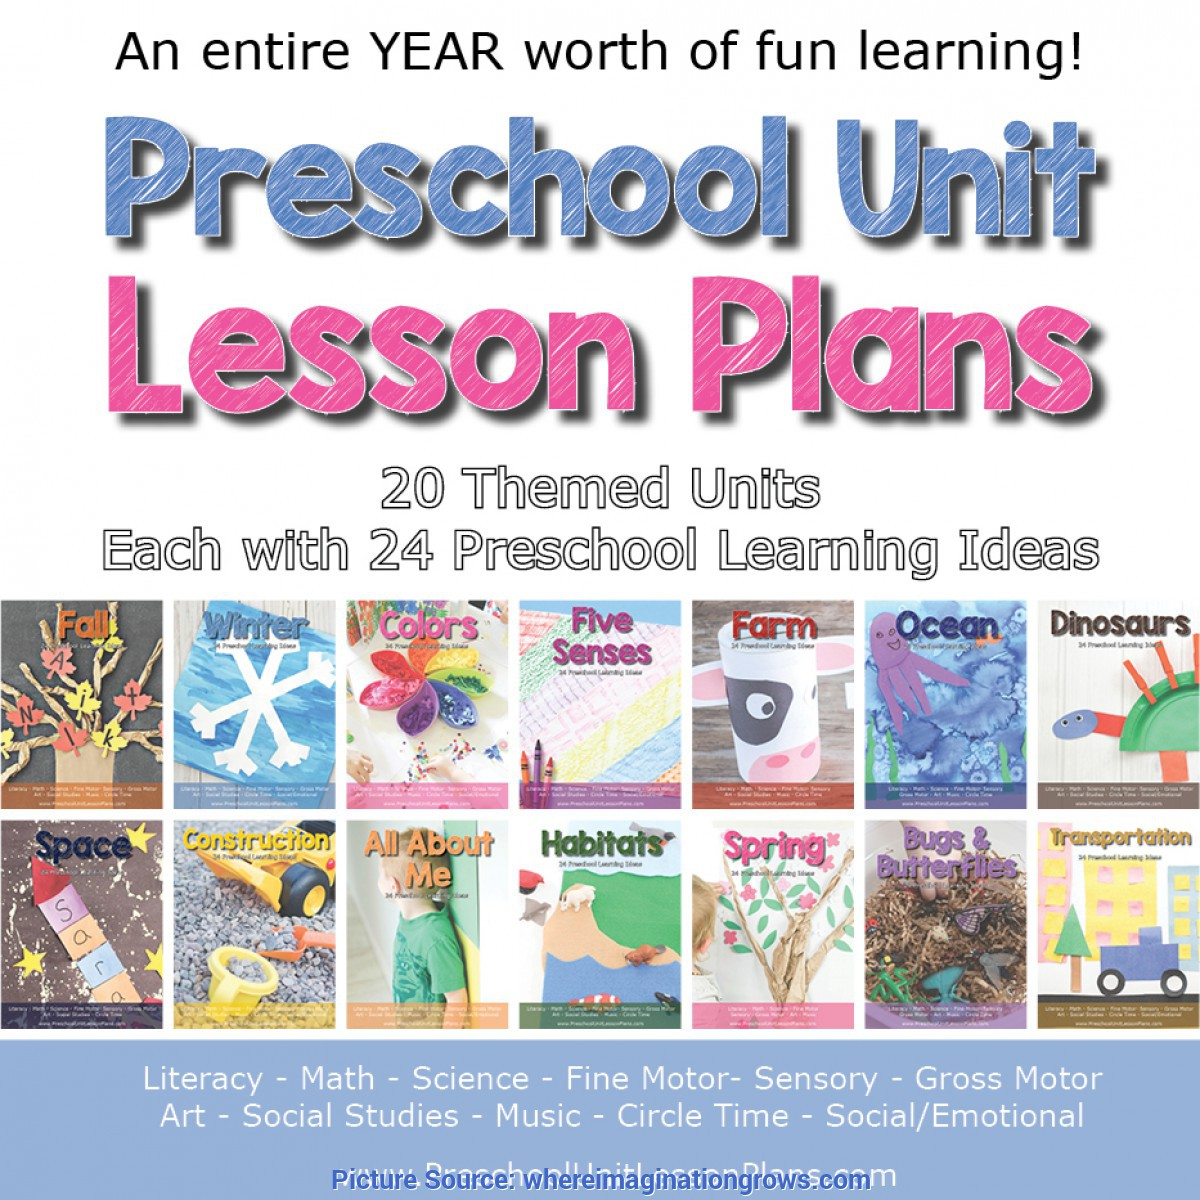 Special Preschool Art Lesson Plans A Year Of Preschool Lesson Plans Bundle - Where Imagination G